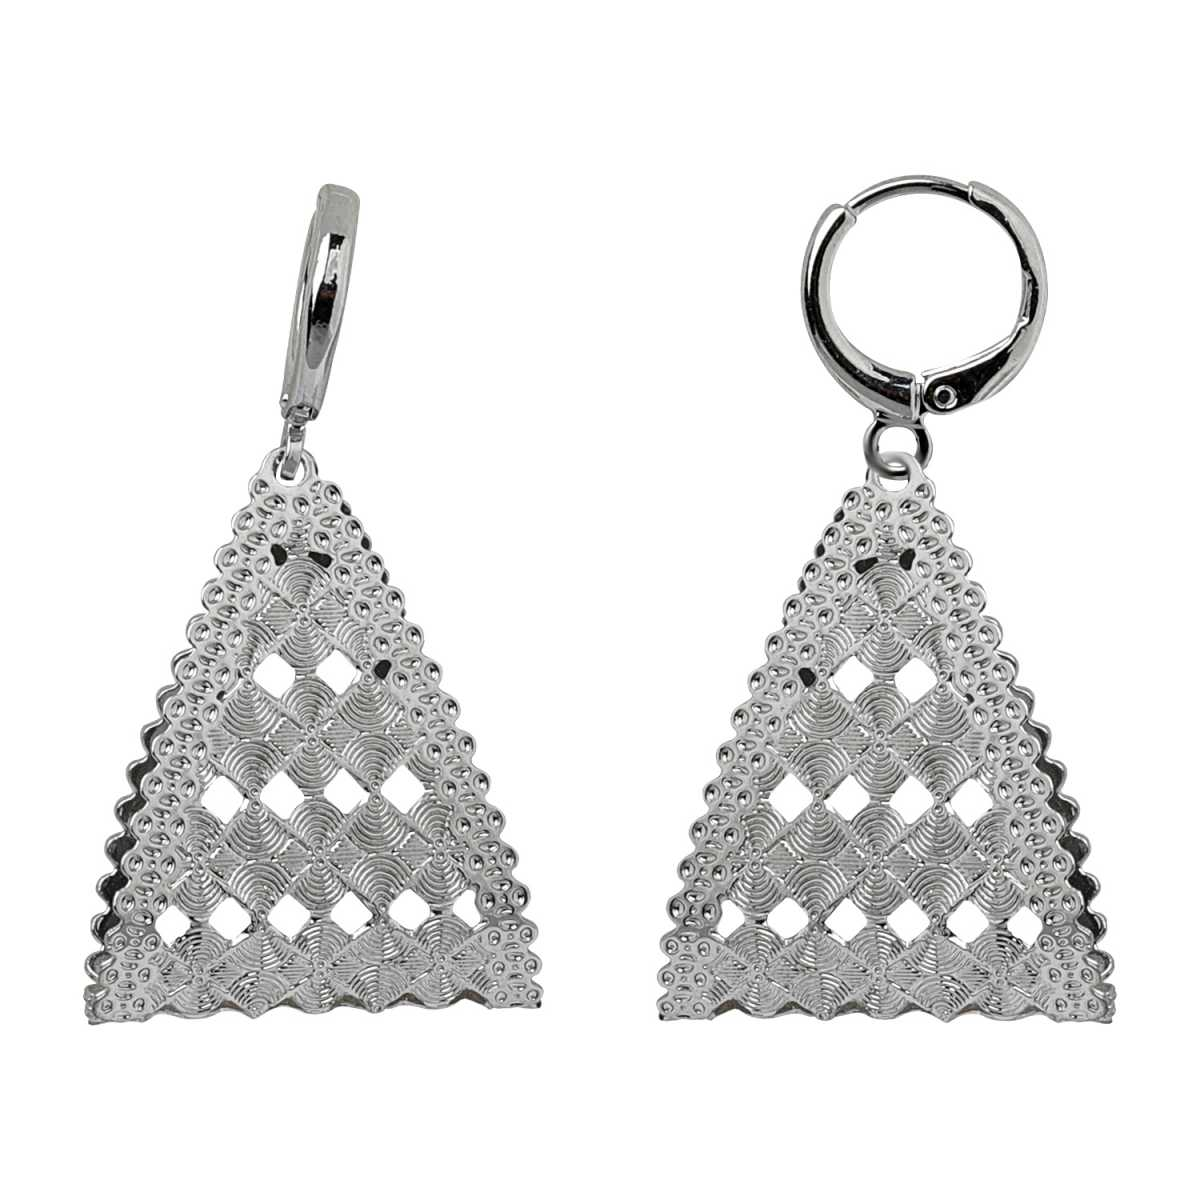 Silver Shine Stylish Silver Triangle Clip On Bali Earring for Women